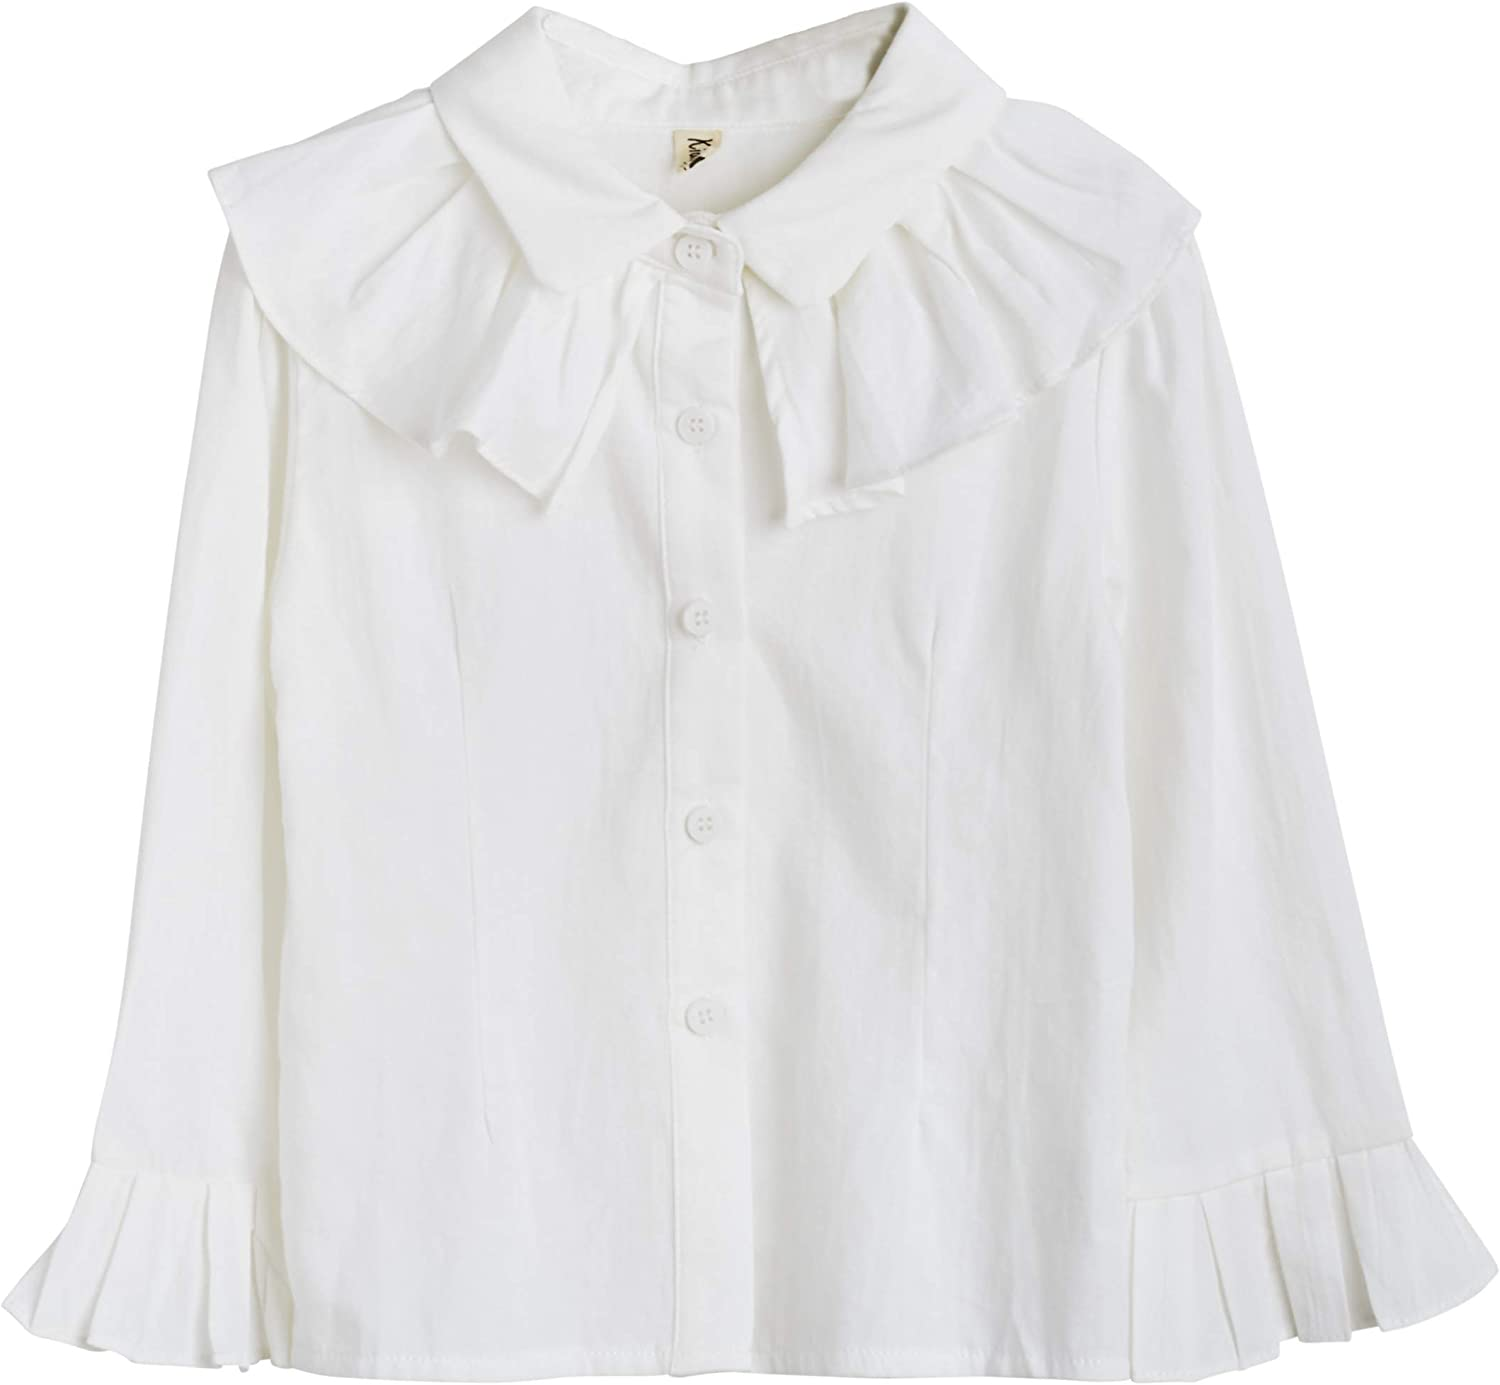 ContiKids Girl's Big Bell Sleeve Ruffle Top Button Down Blouse